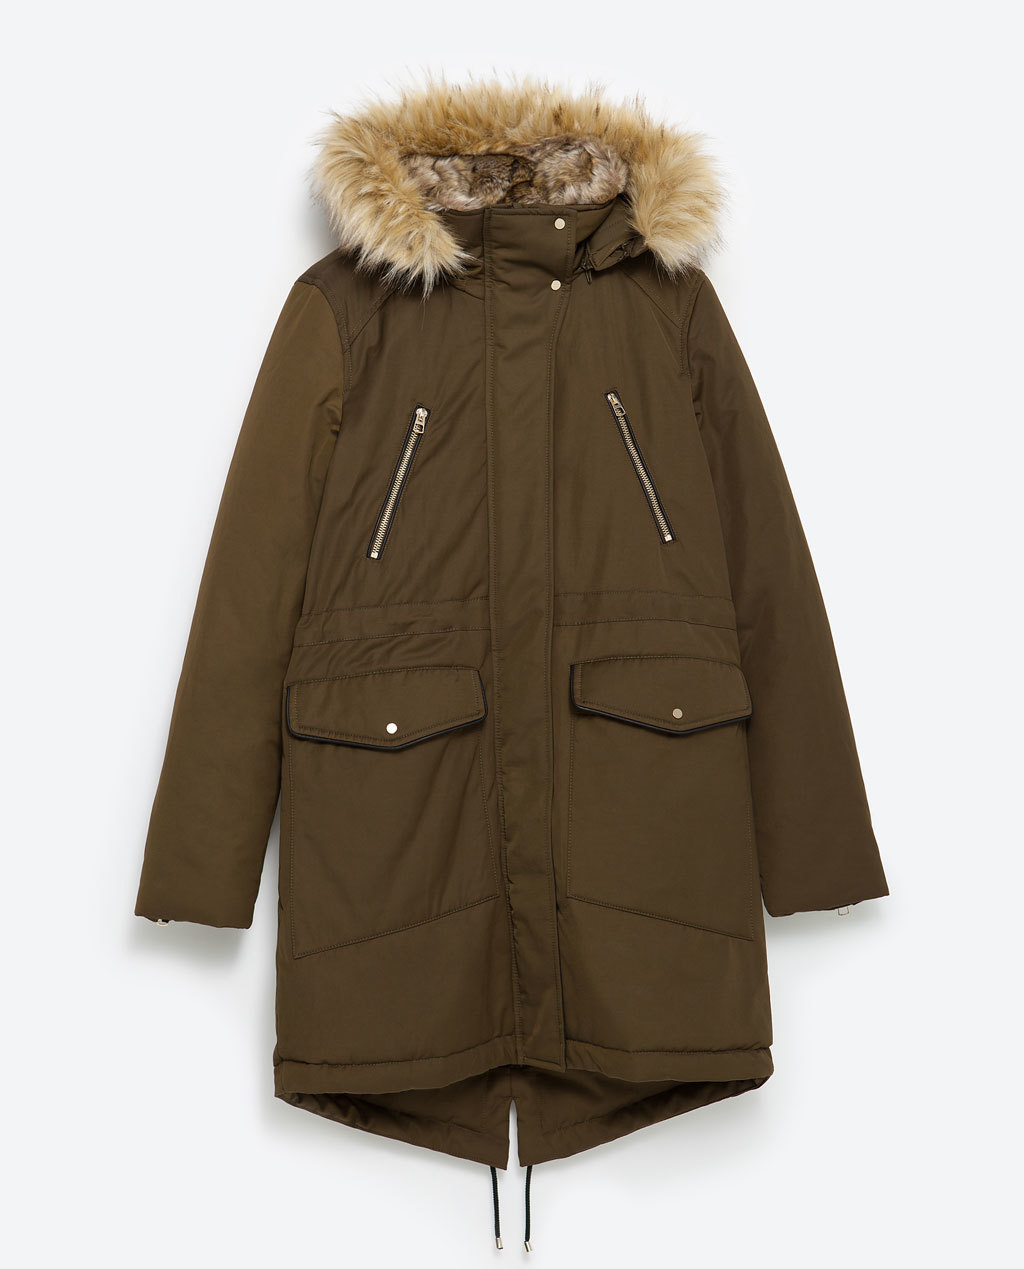 Parka - pattern: plain; collar: funnel; style: parka; back detail: hood; length: mid thigh; secondary colour: camel; predominant colour: khaki; occasions: casual; fit: straight cut (boxy); fibres: cotton - 100%; sleeve length: long sleeve; sleeve style: standard; texture group: cotton feel fabrics; collar break: high; pattern type: fabric; embellishment: fur; season: a/w 2015; wardrobe: highlight; embellishment location: hip